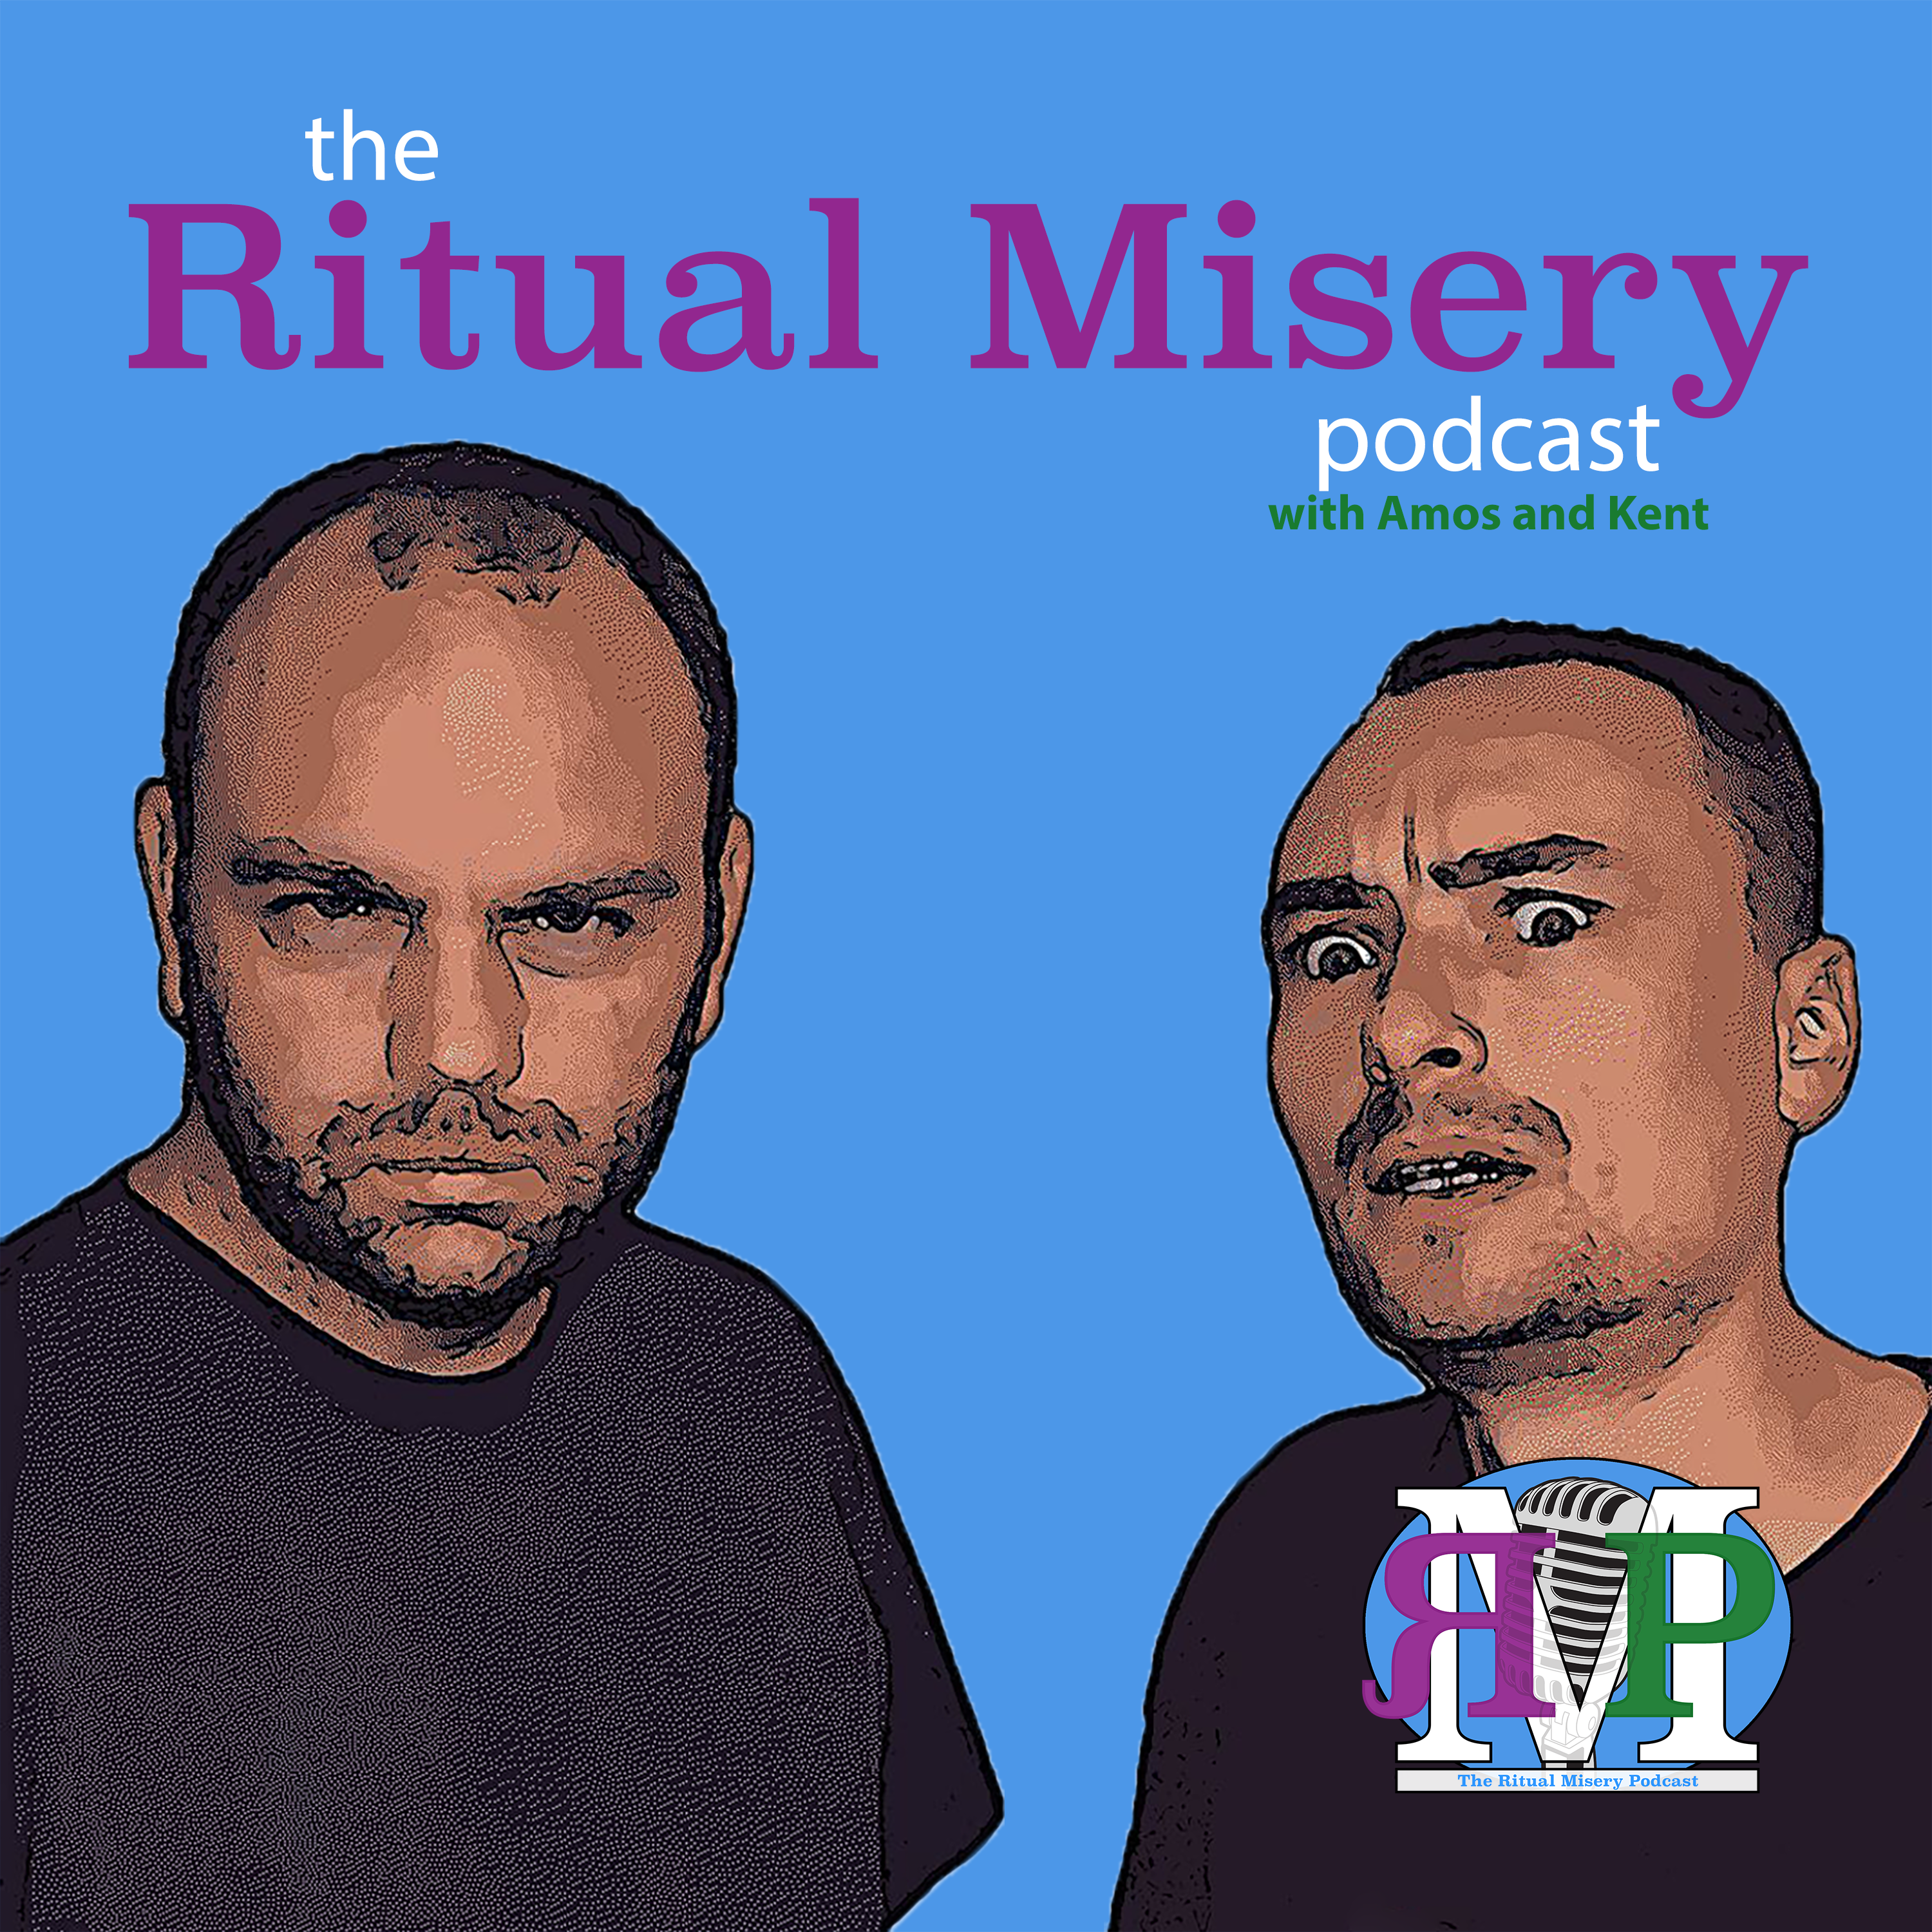 The Ritual Misery Podcast